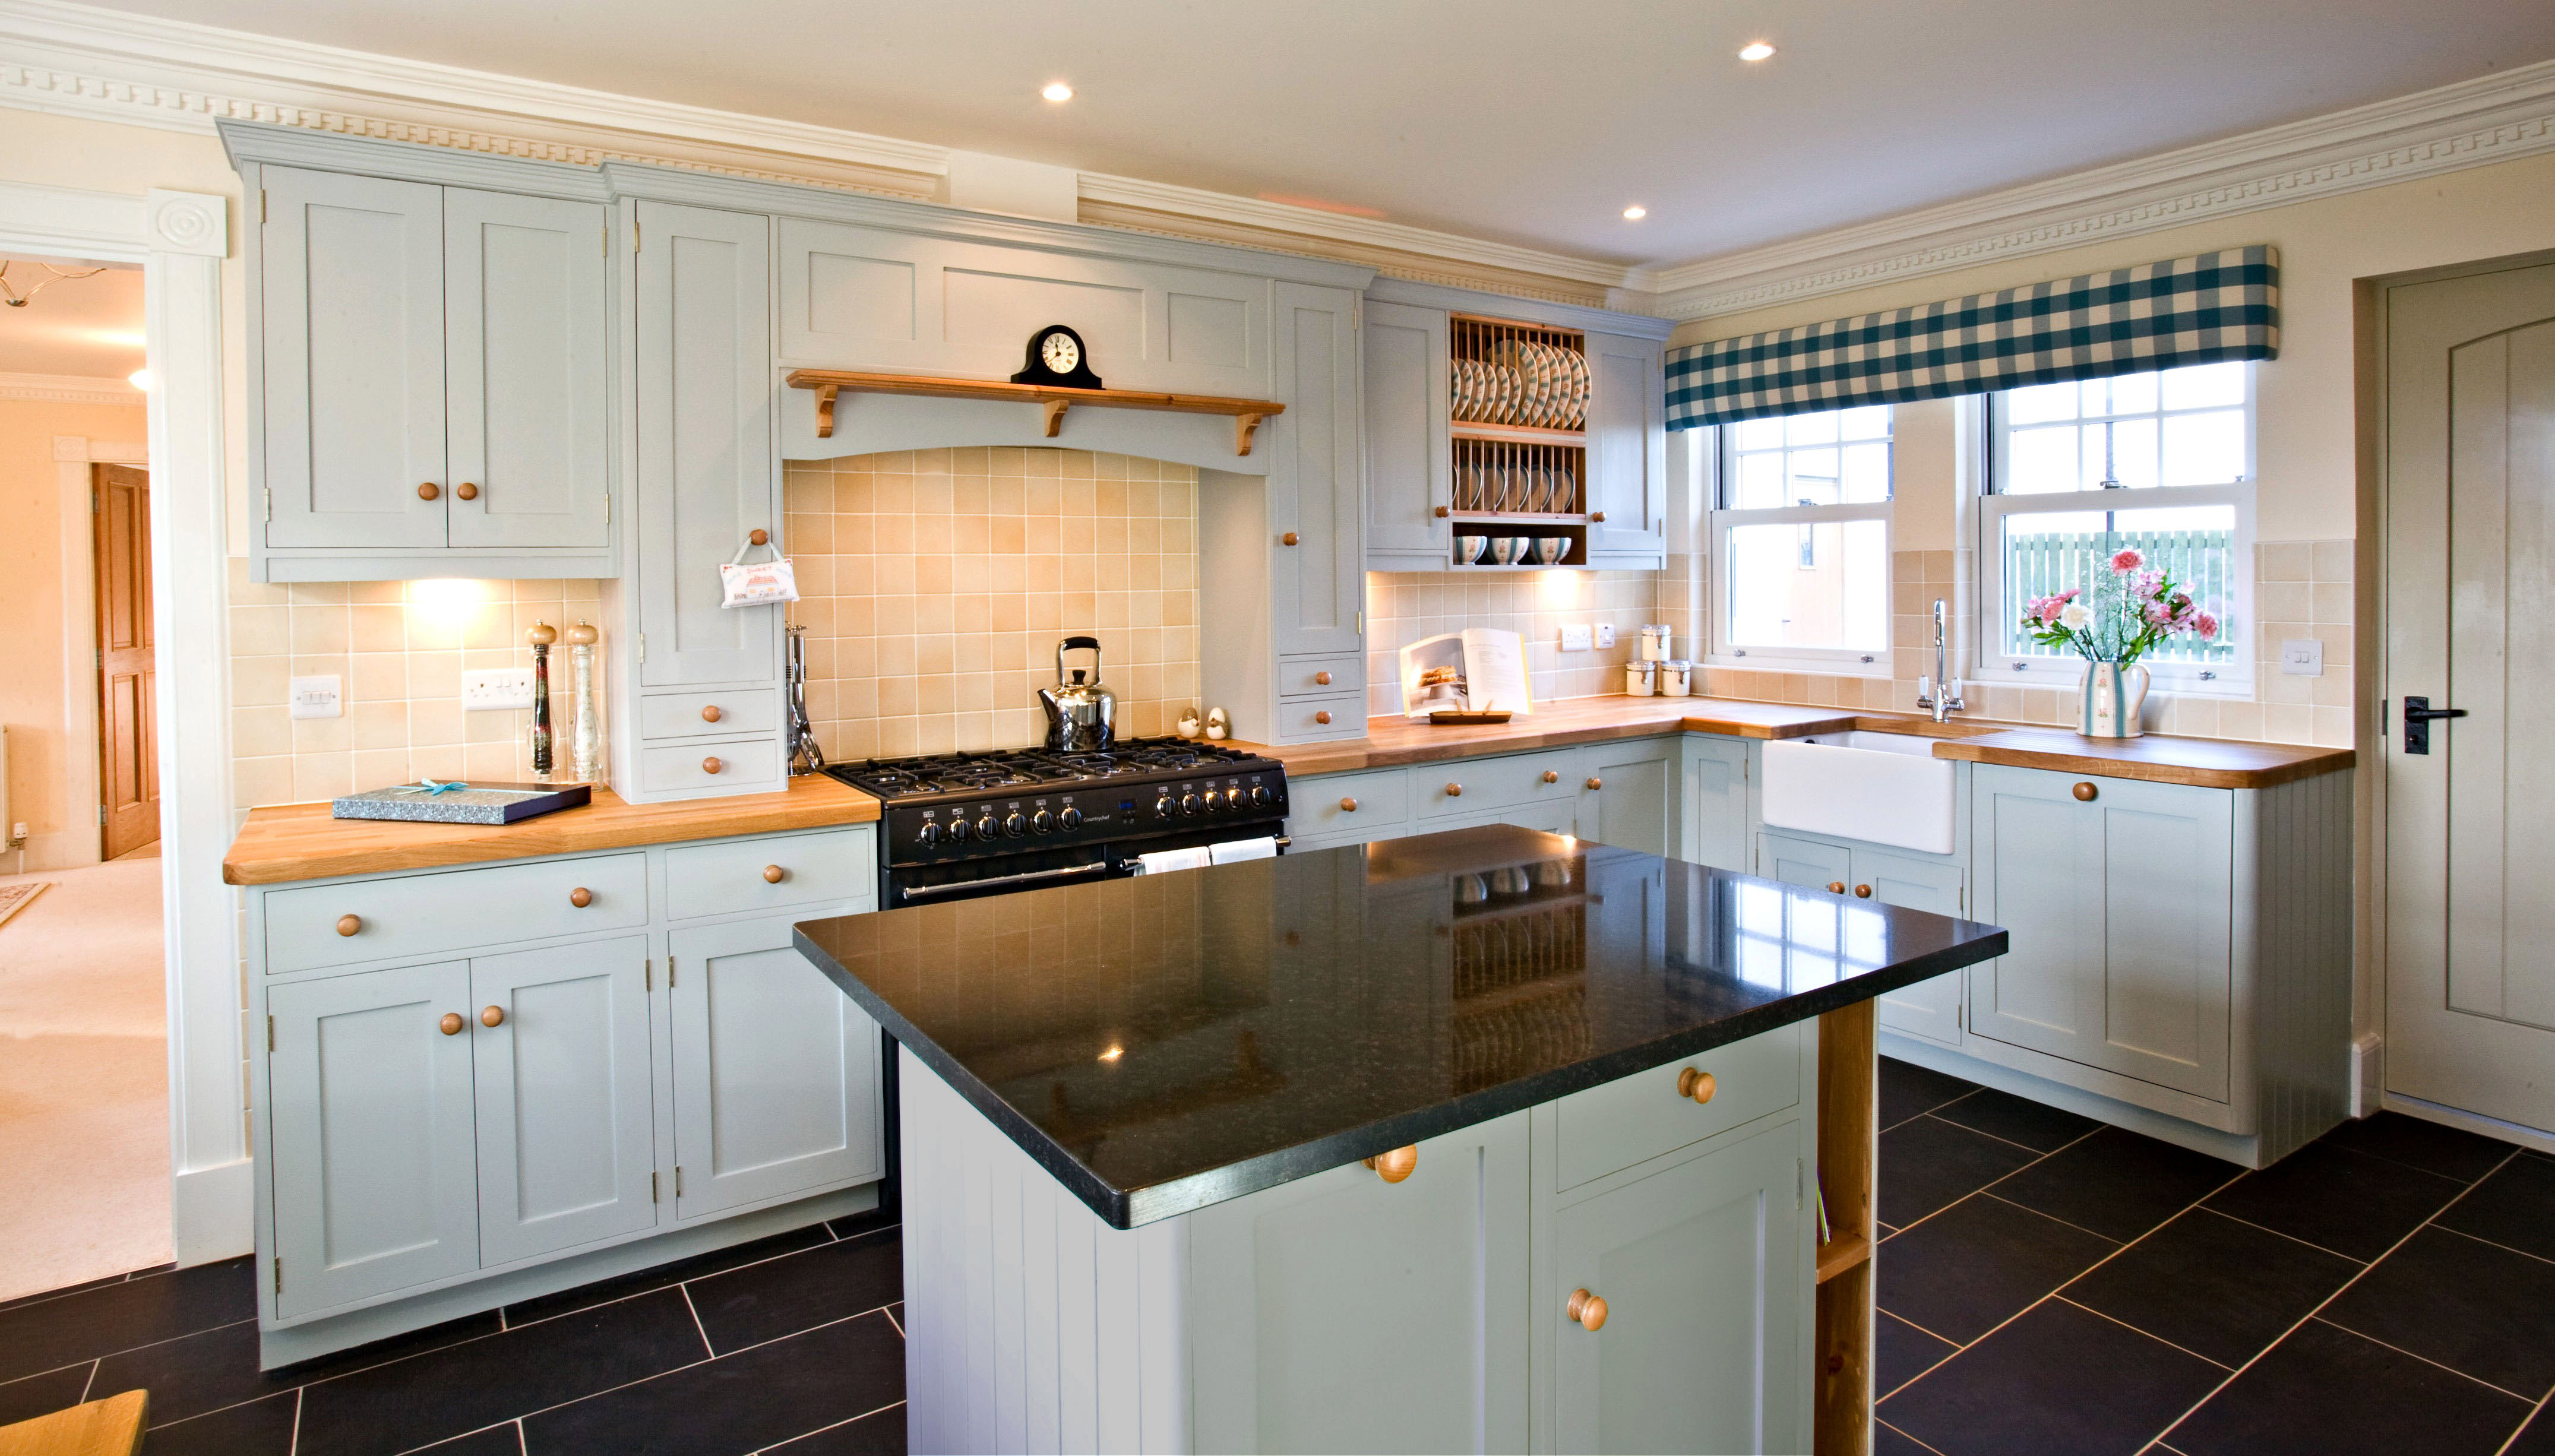 Kitchen Cabinets Nigeria kitchen cabinet designs in nigeria | tolet insider